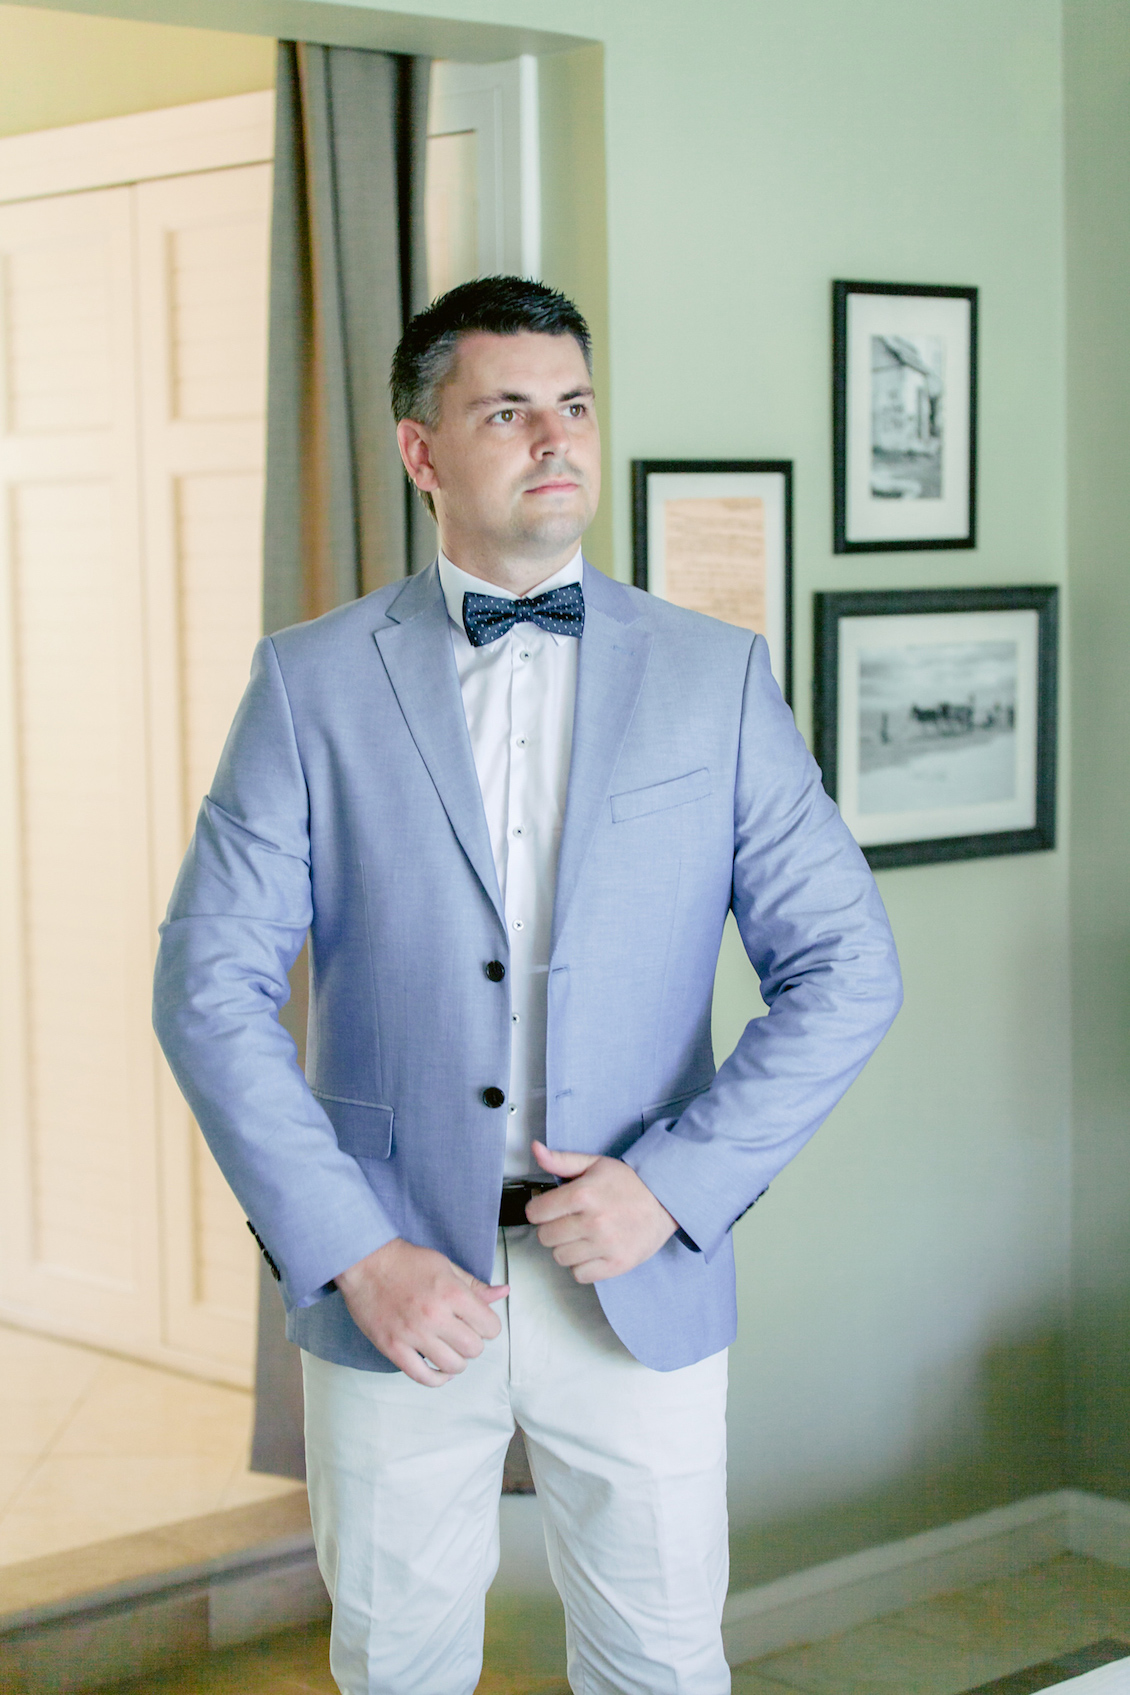 Dapper Groom from an Intimate Destination Wedding on a Tropical Island / photo by Agape Productions